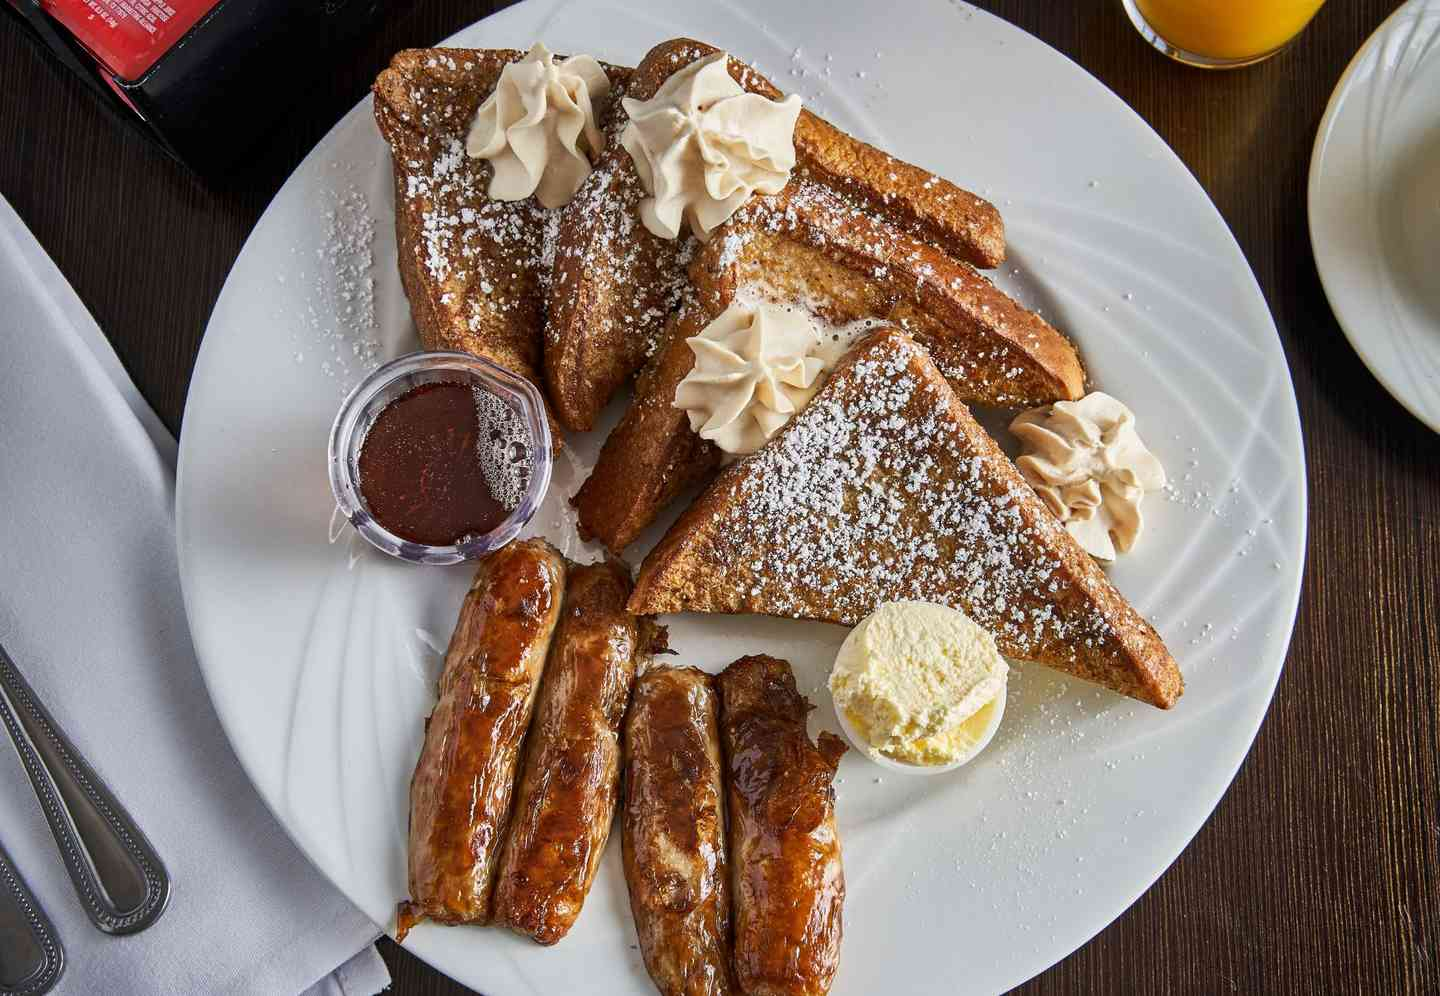 The French Toast*